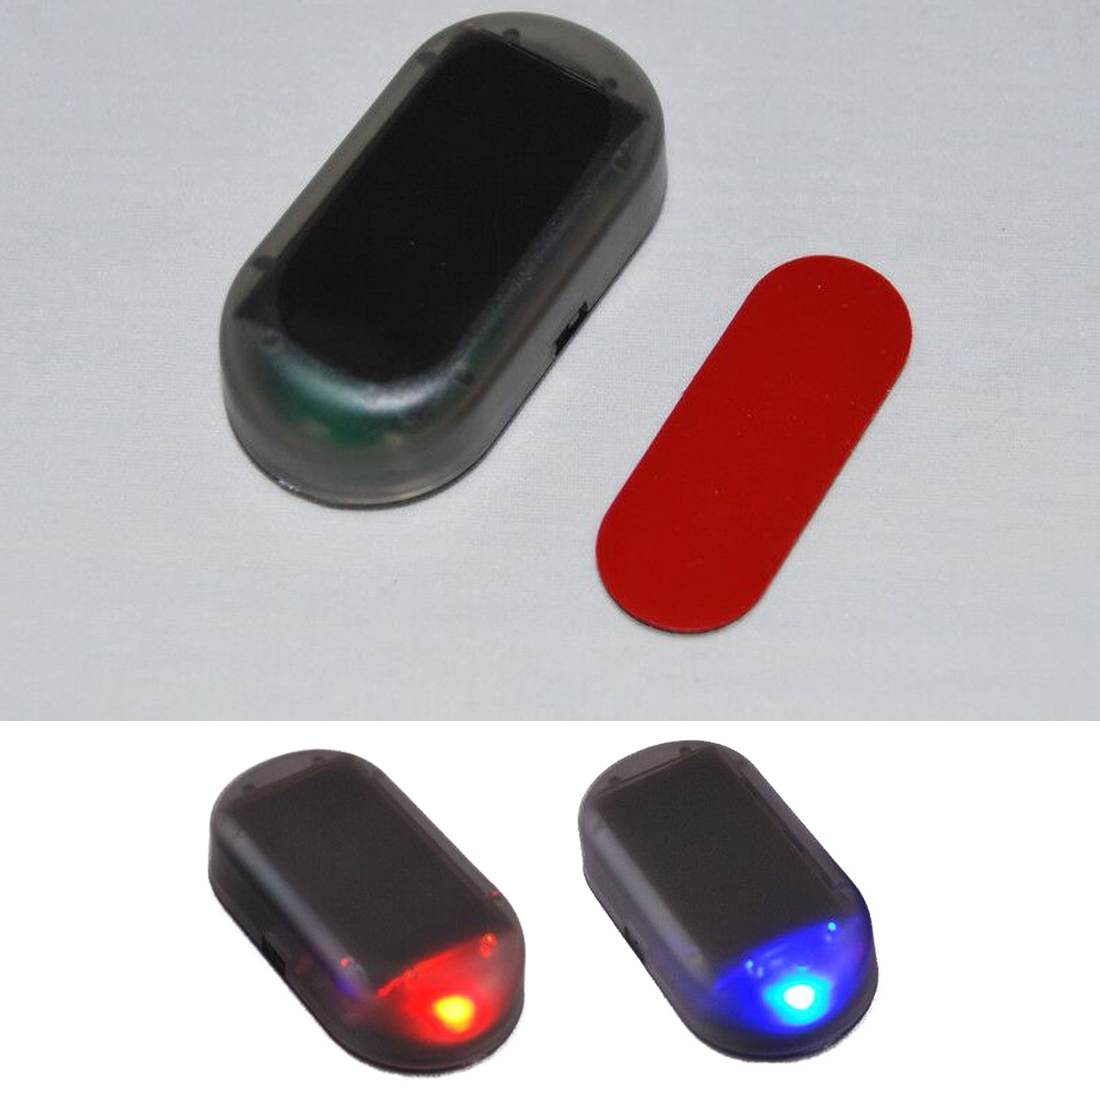 1PCS Useful Car Simulation Alarm Led Light Security Fake Solar Anti-theft Warning Lights Flash Blinking Car